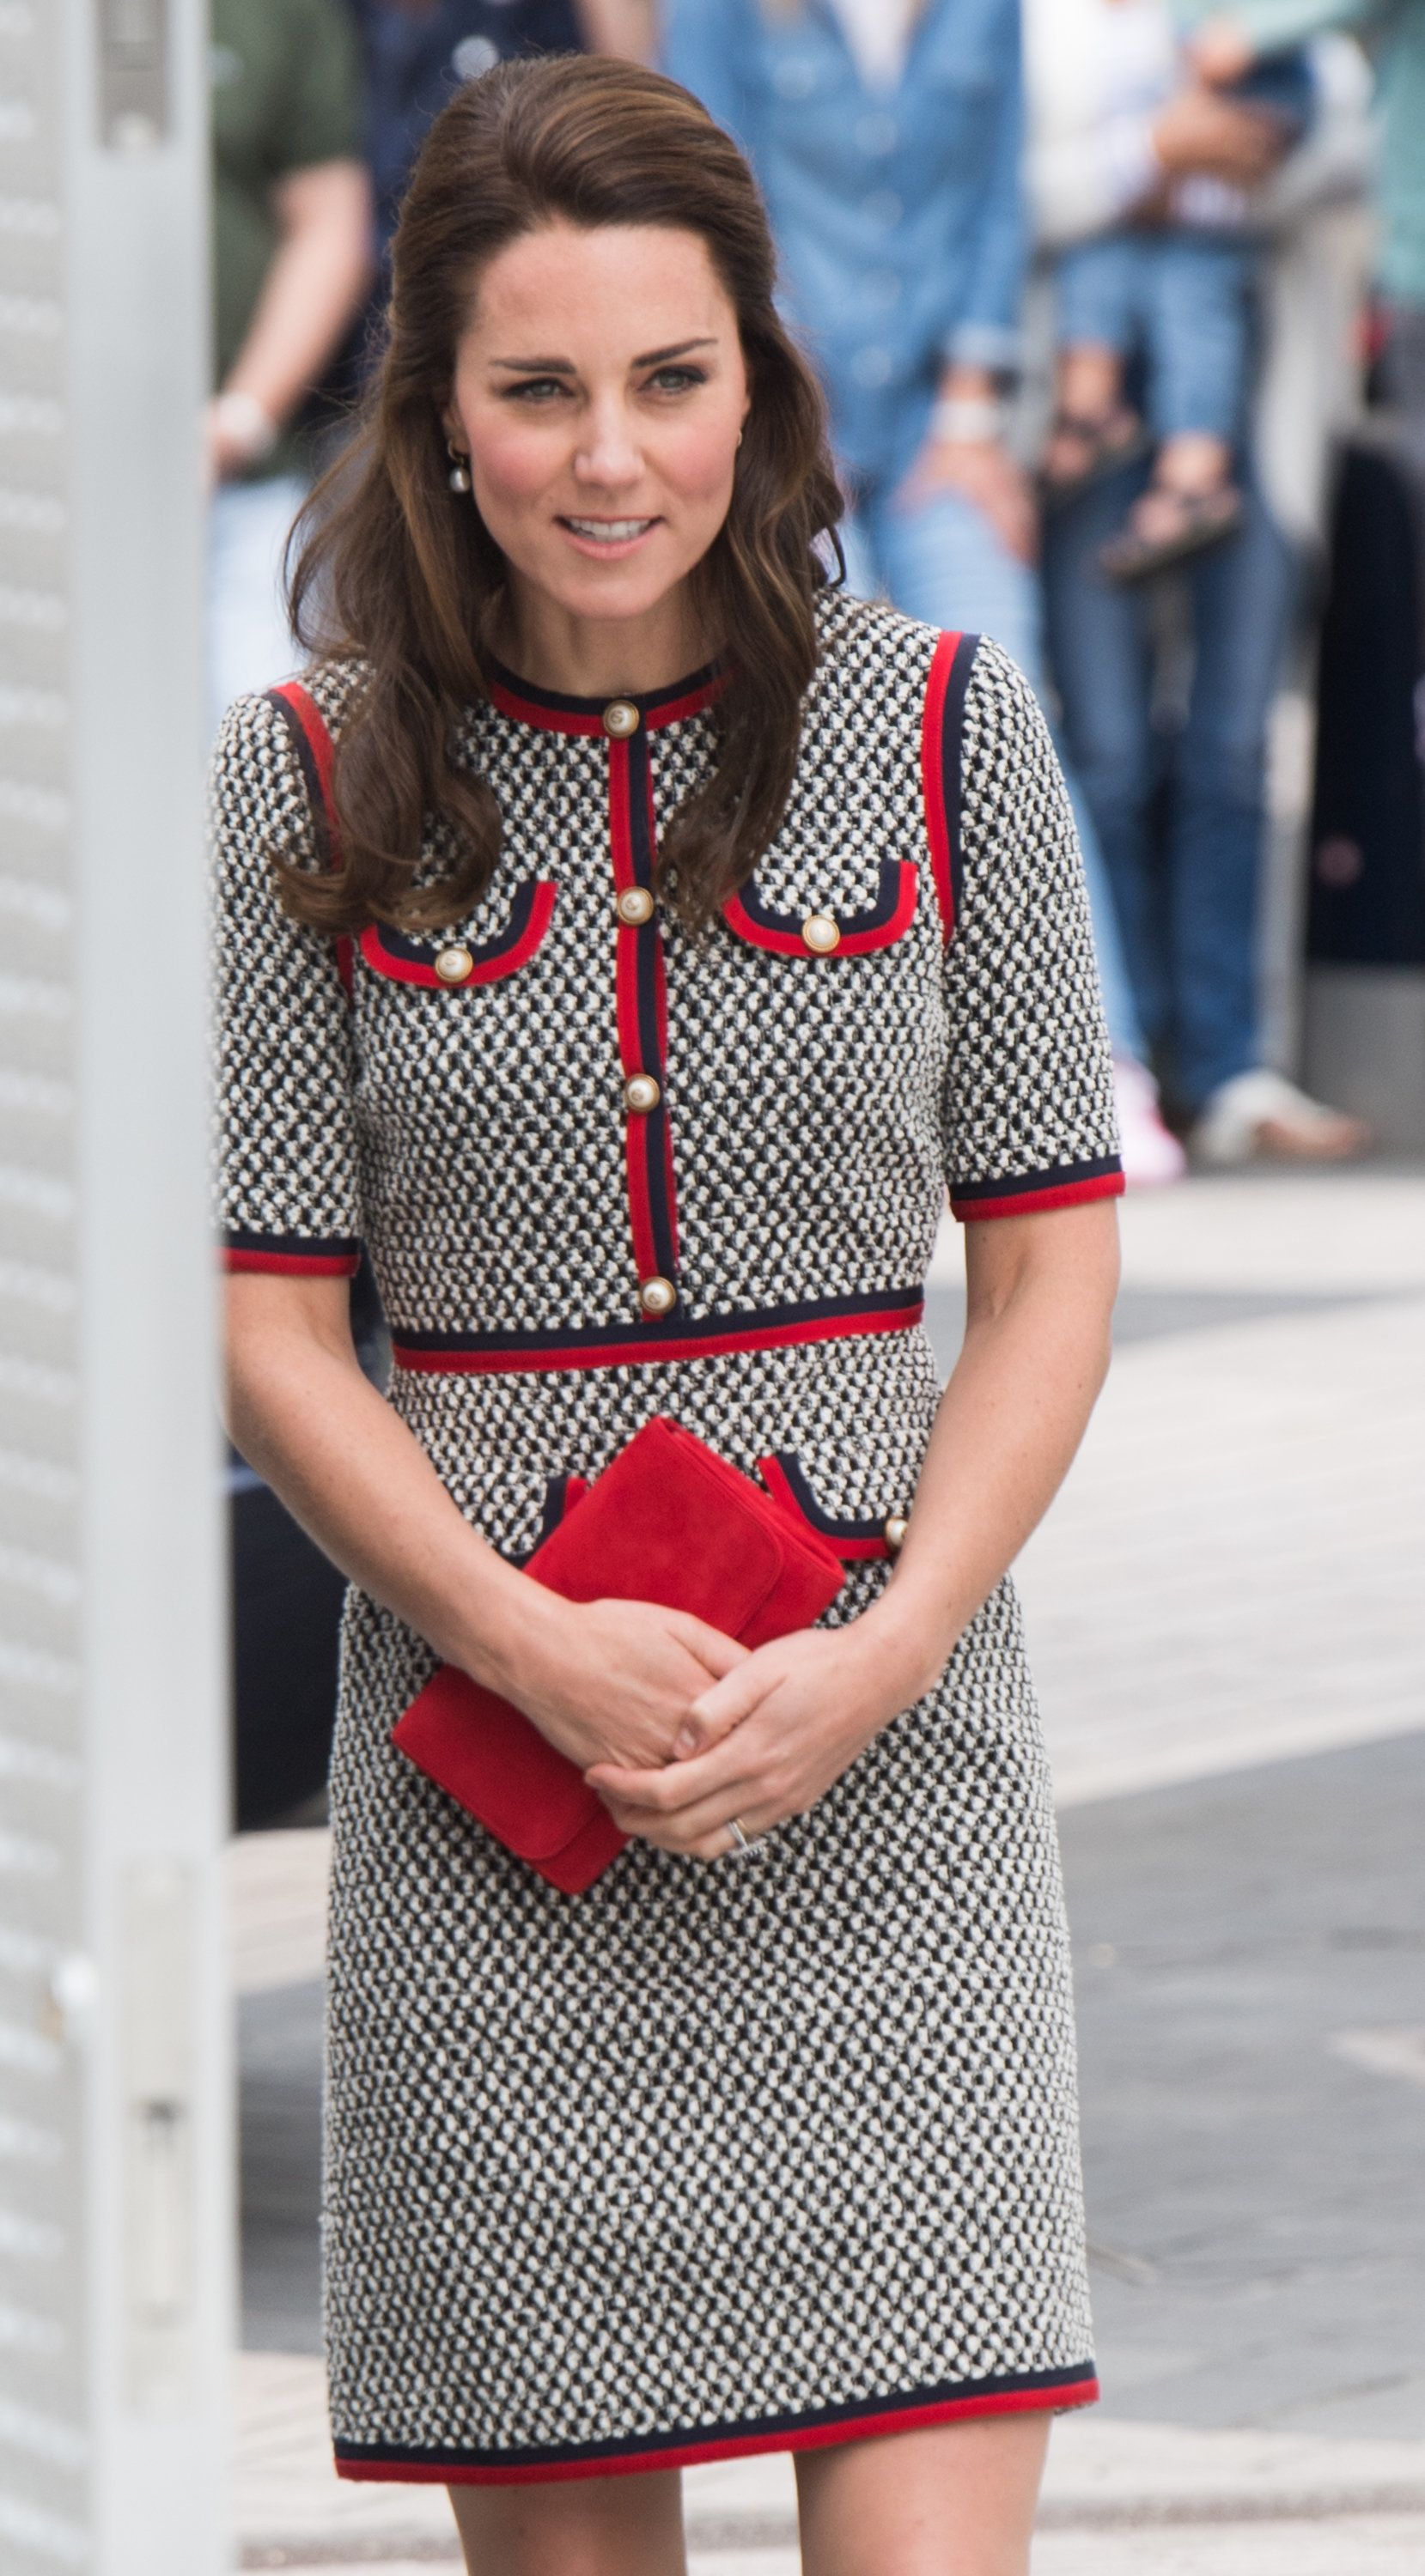 LONDON, ENGLAND - JUNE 29:  Catherine, Duchess of Cambridge makes an official visit to the new V&A exhibition road quarter at Victoria & Albert Museum on June 29, 2017 in London, England.  The V&A Exhibition Road Quarter was designed by British Architect Amanda Levete.  (Photo by Samir Hussein/Samir Hussein/WireImage)